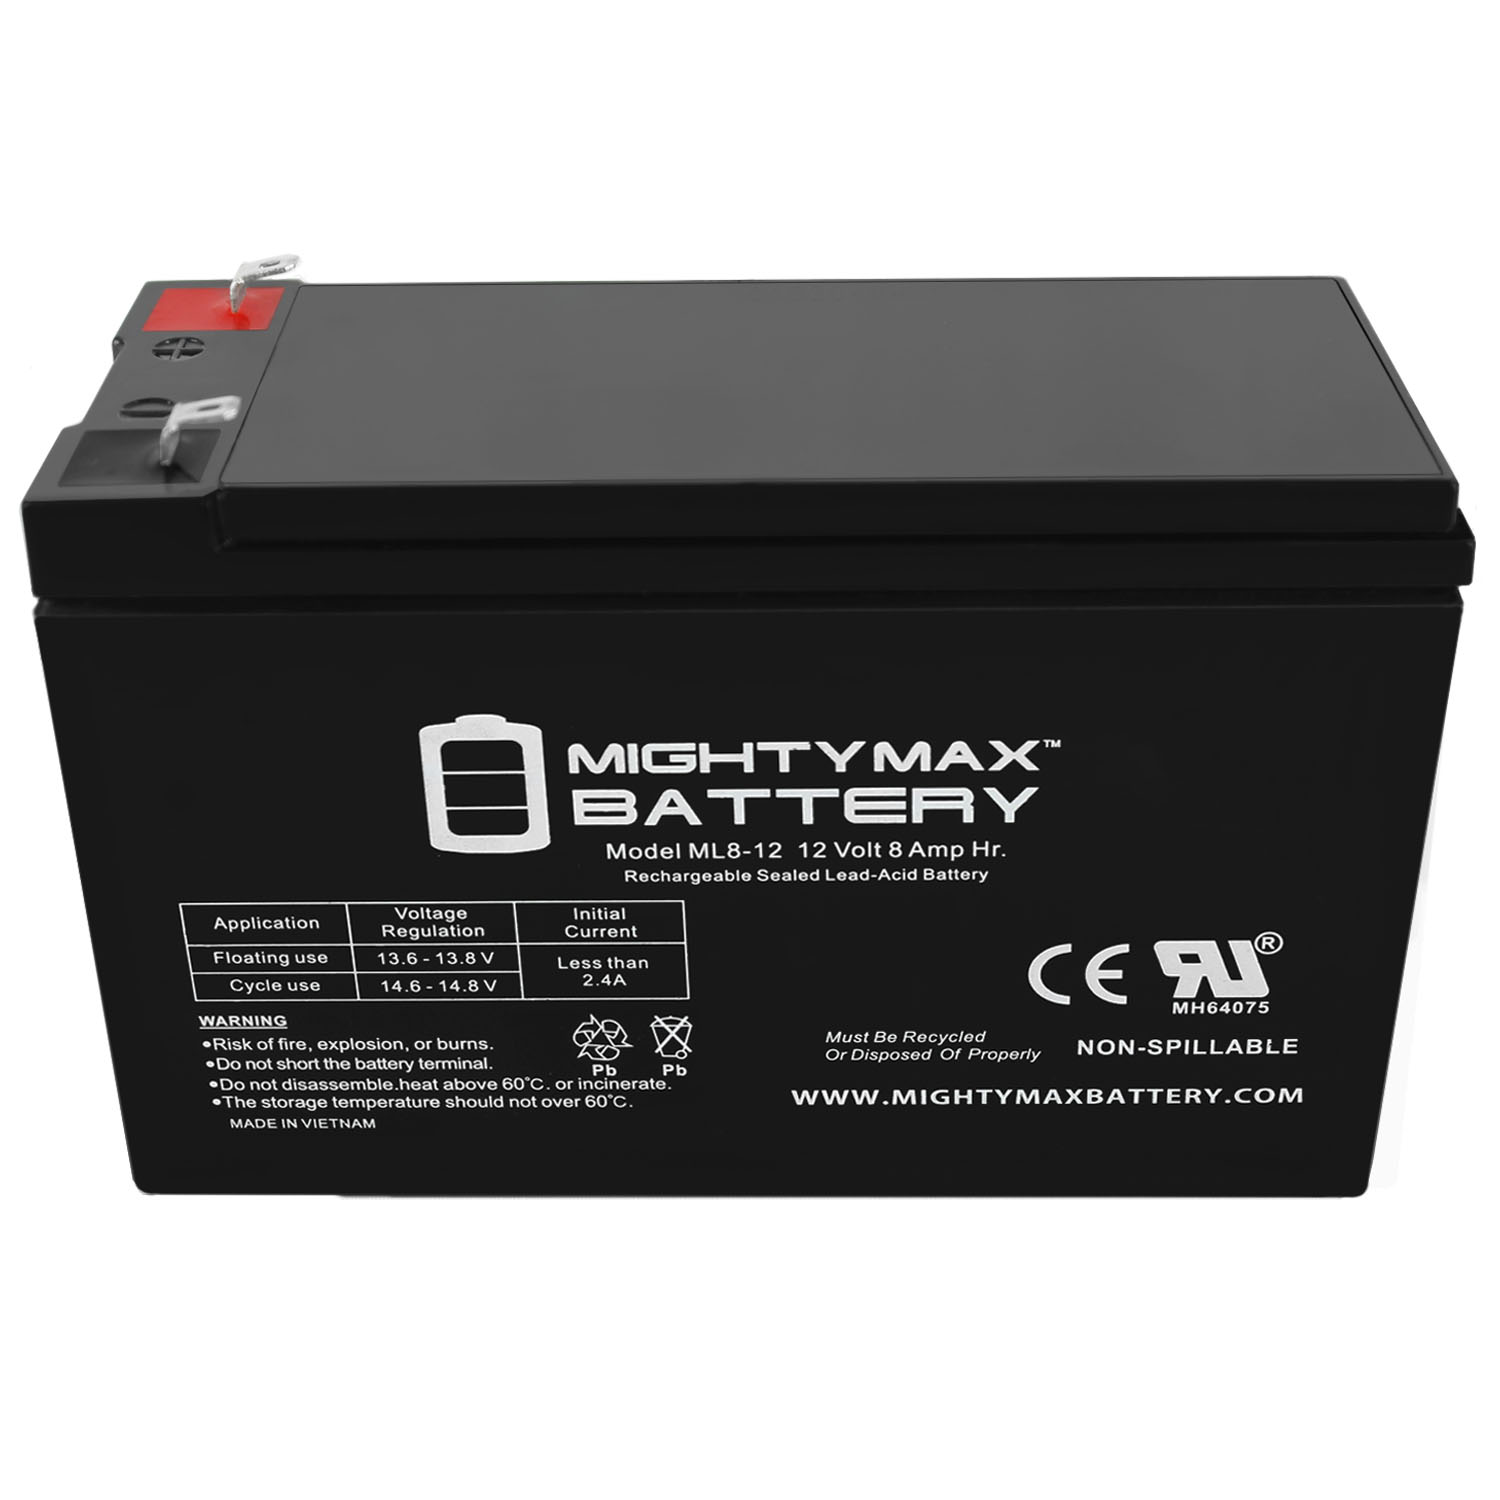 2 Pack Brand Product Mighty Max Battery 12V 8Ah Replacement Battery for Tripp Lite SMART500USB SMART550USB